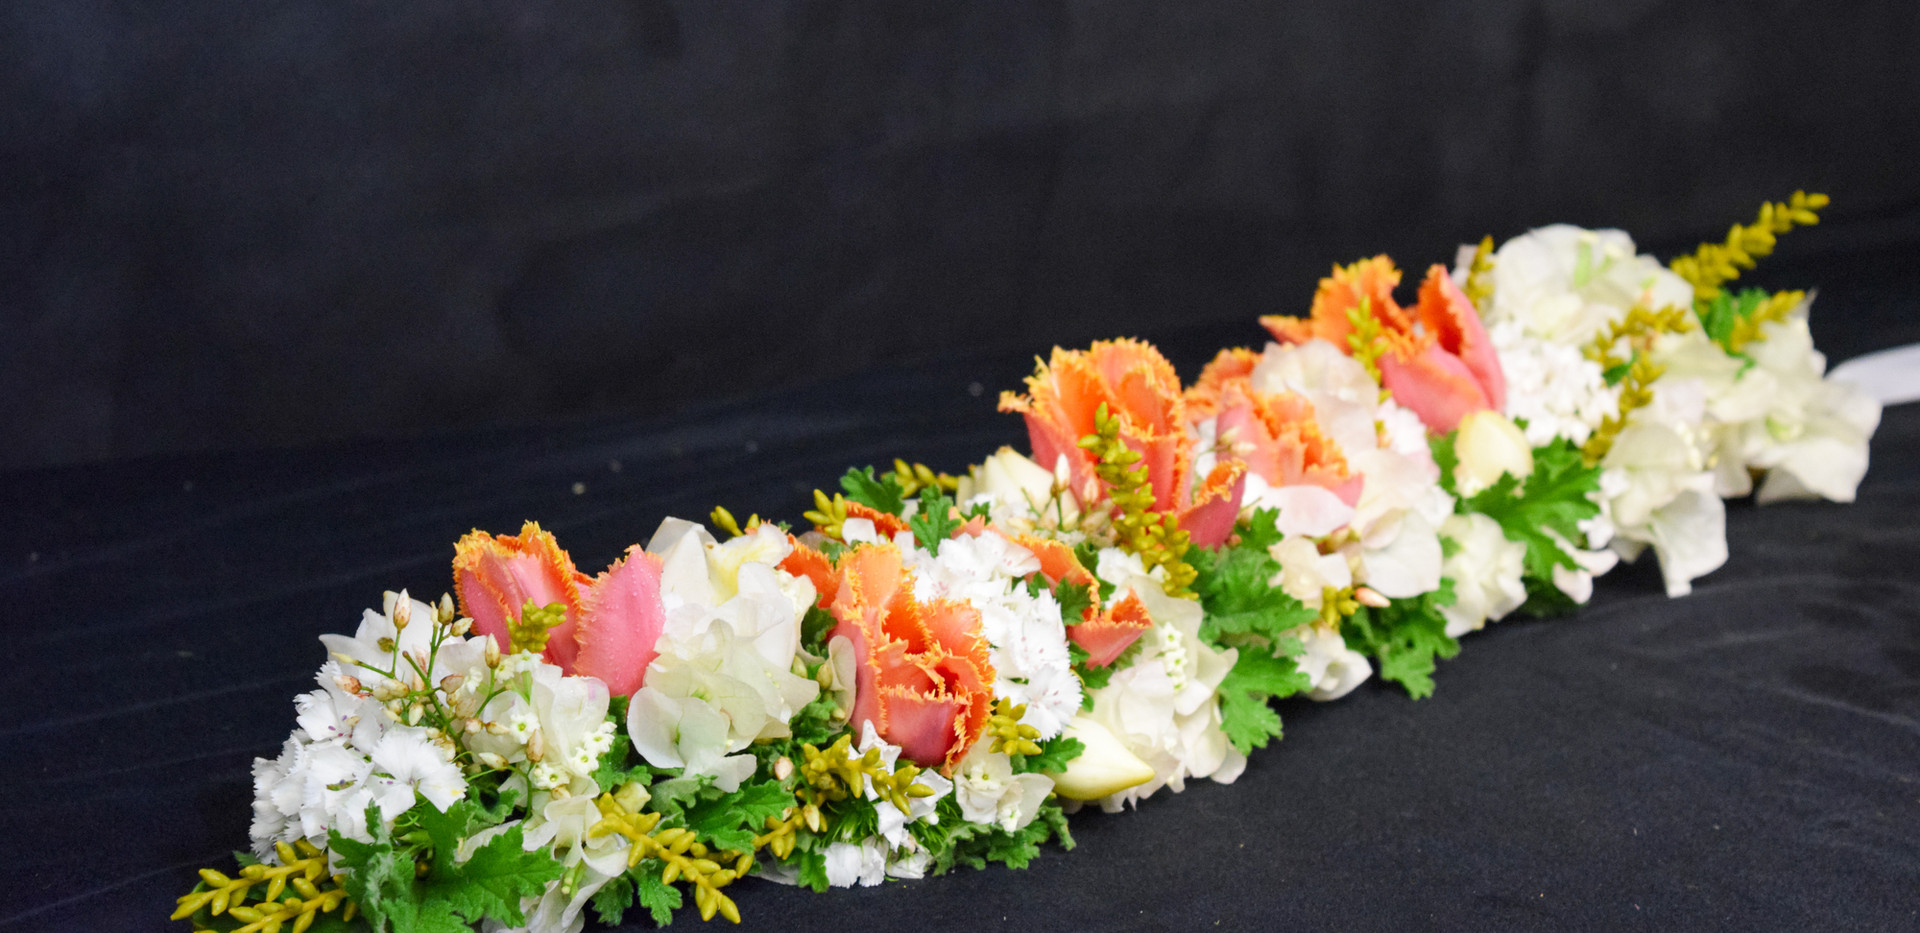 Mostly white with pops of orange and yellow lei po'o